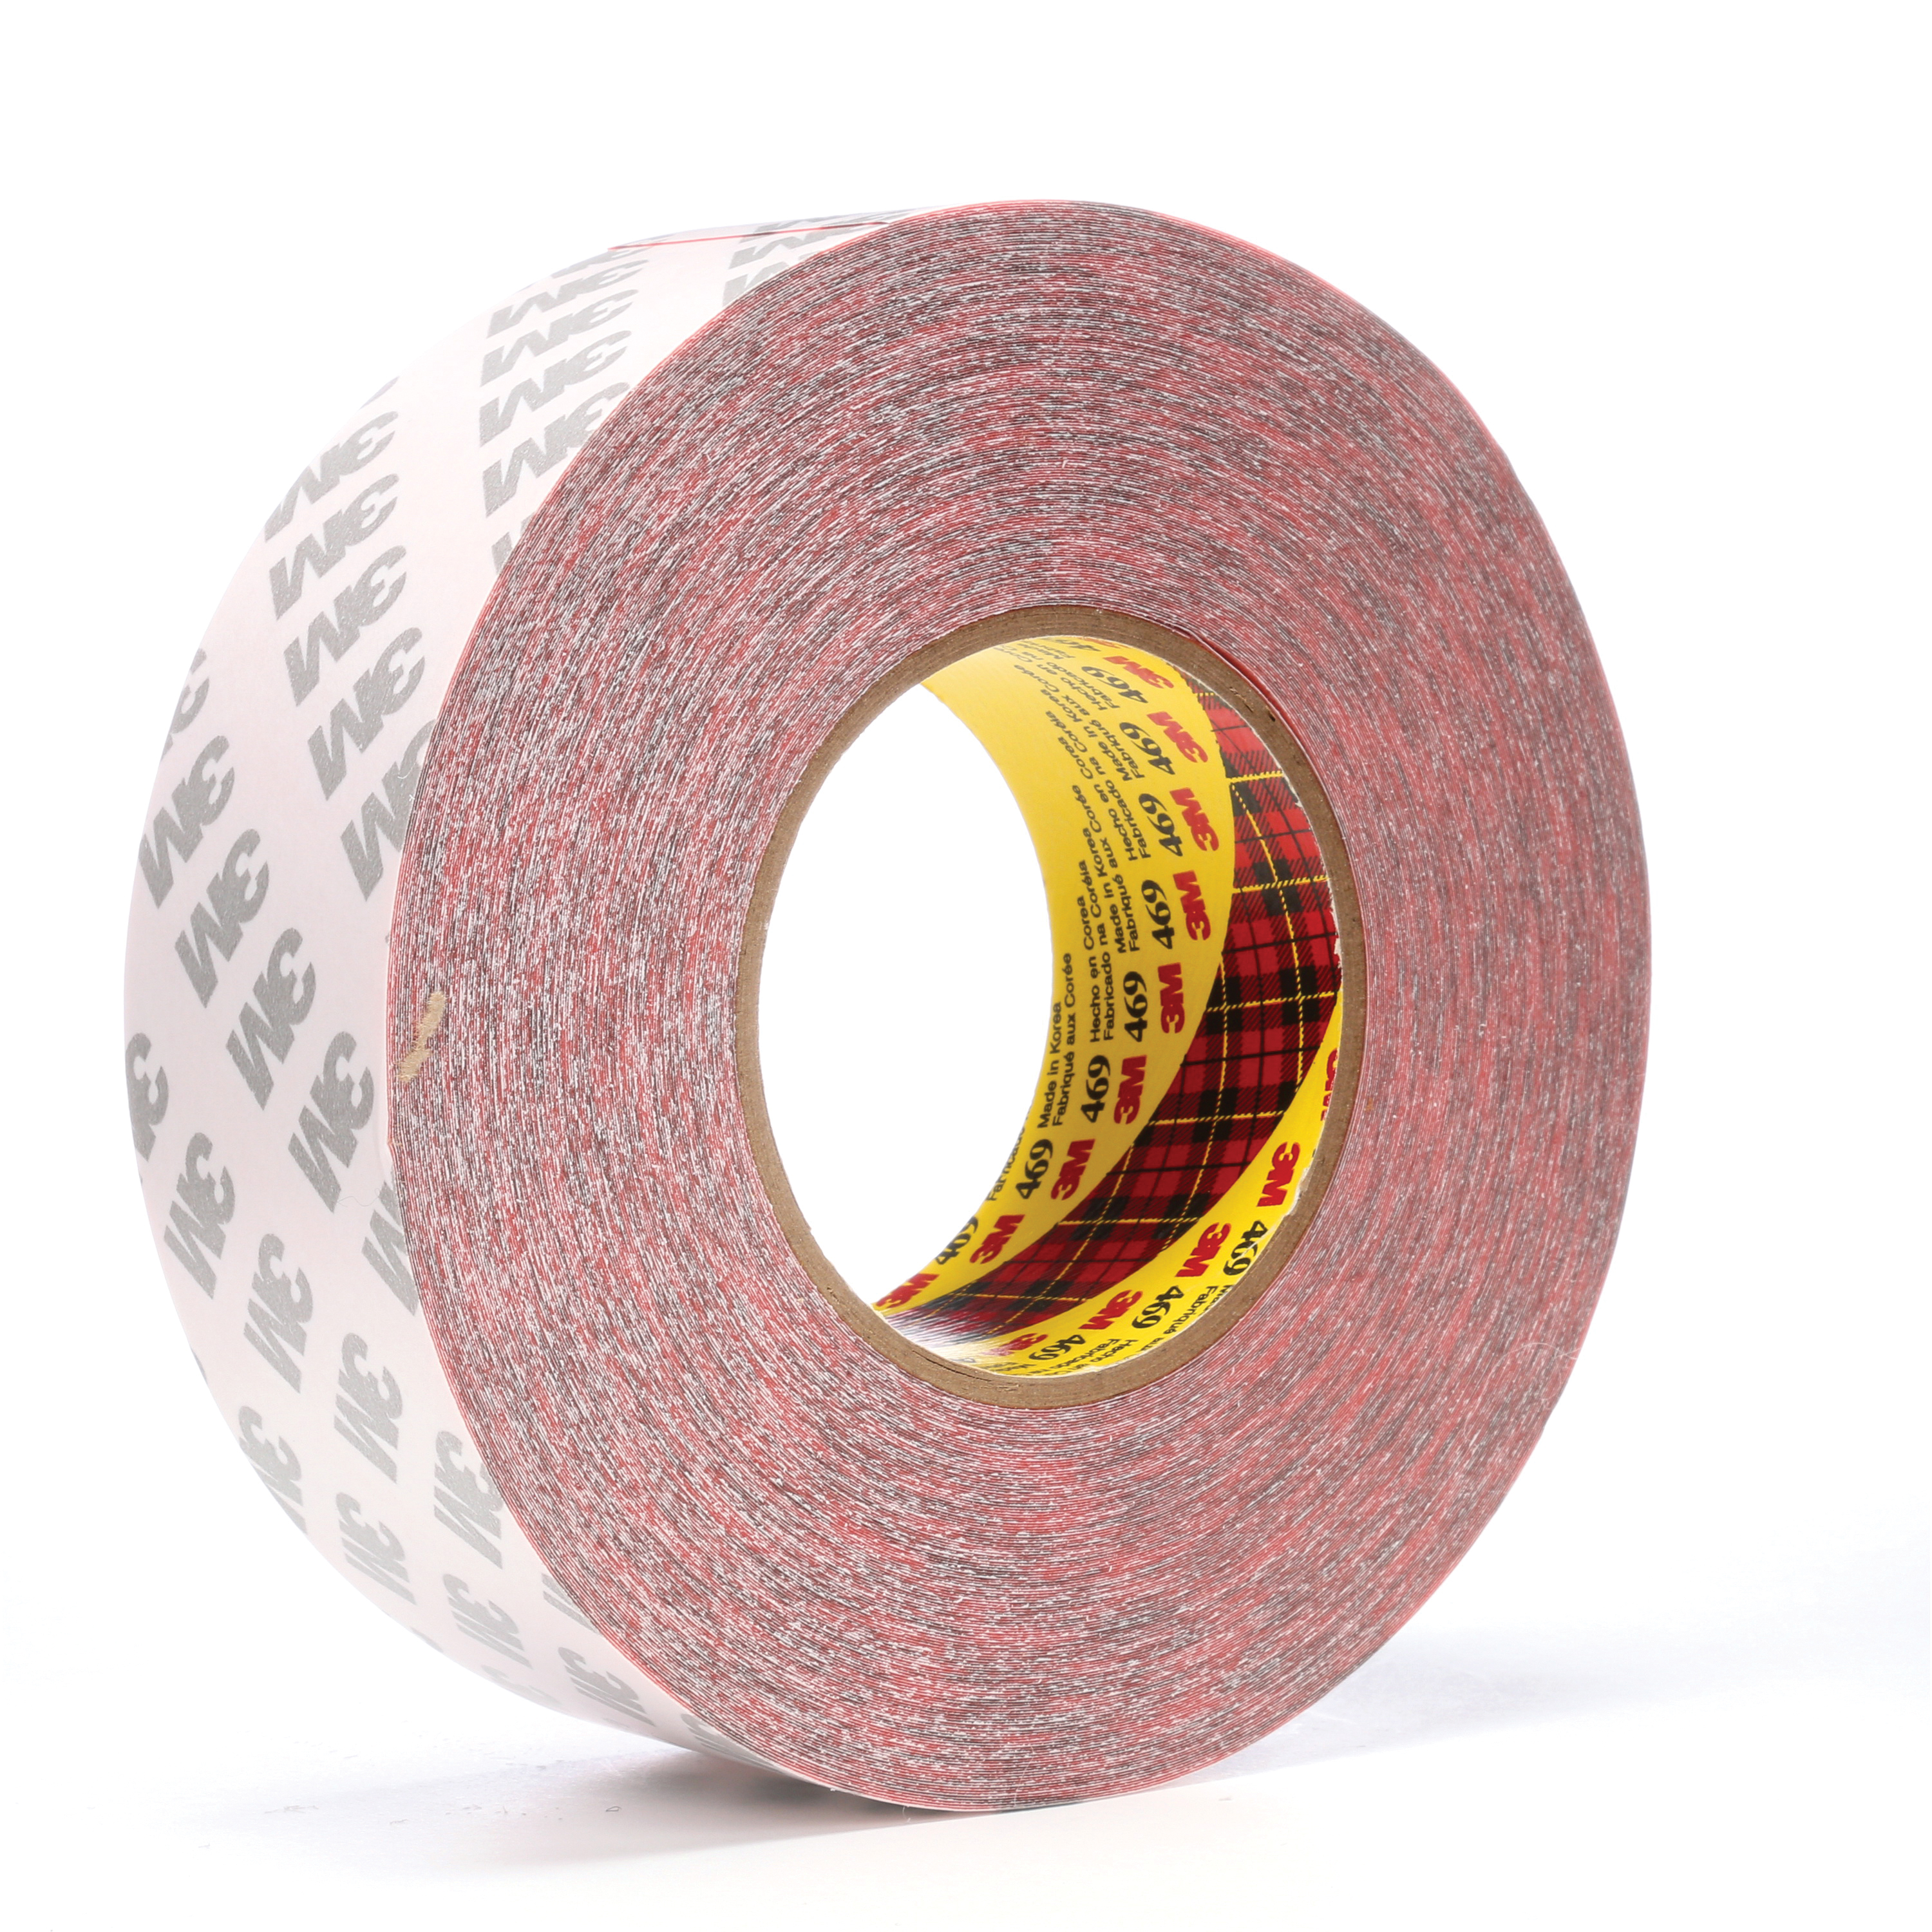 3M™ 021200-38389 Non-Repulpable Double Coated Splicing Tape, 60 yd L x 2 in W, 5.5 mil THK, 340 Acrylic Adhesive, Tissue Paper Backing, Red